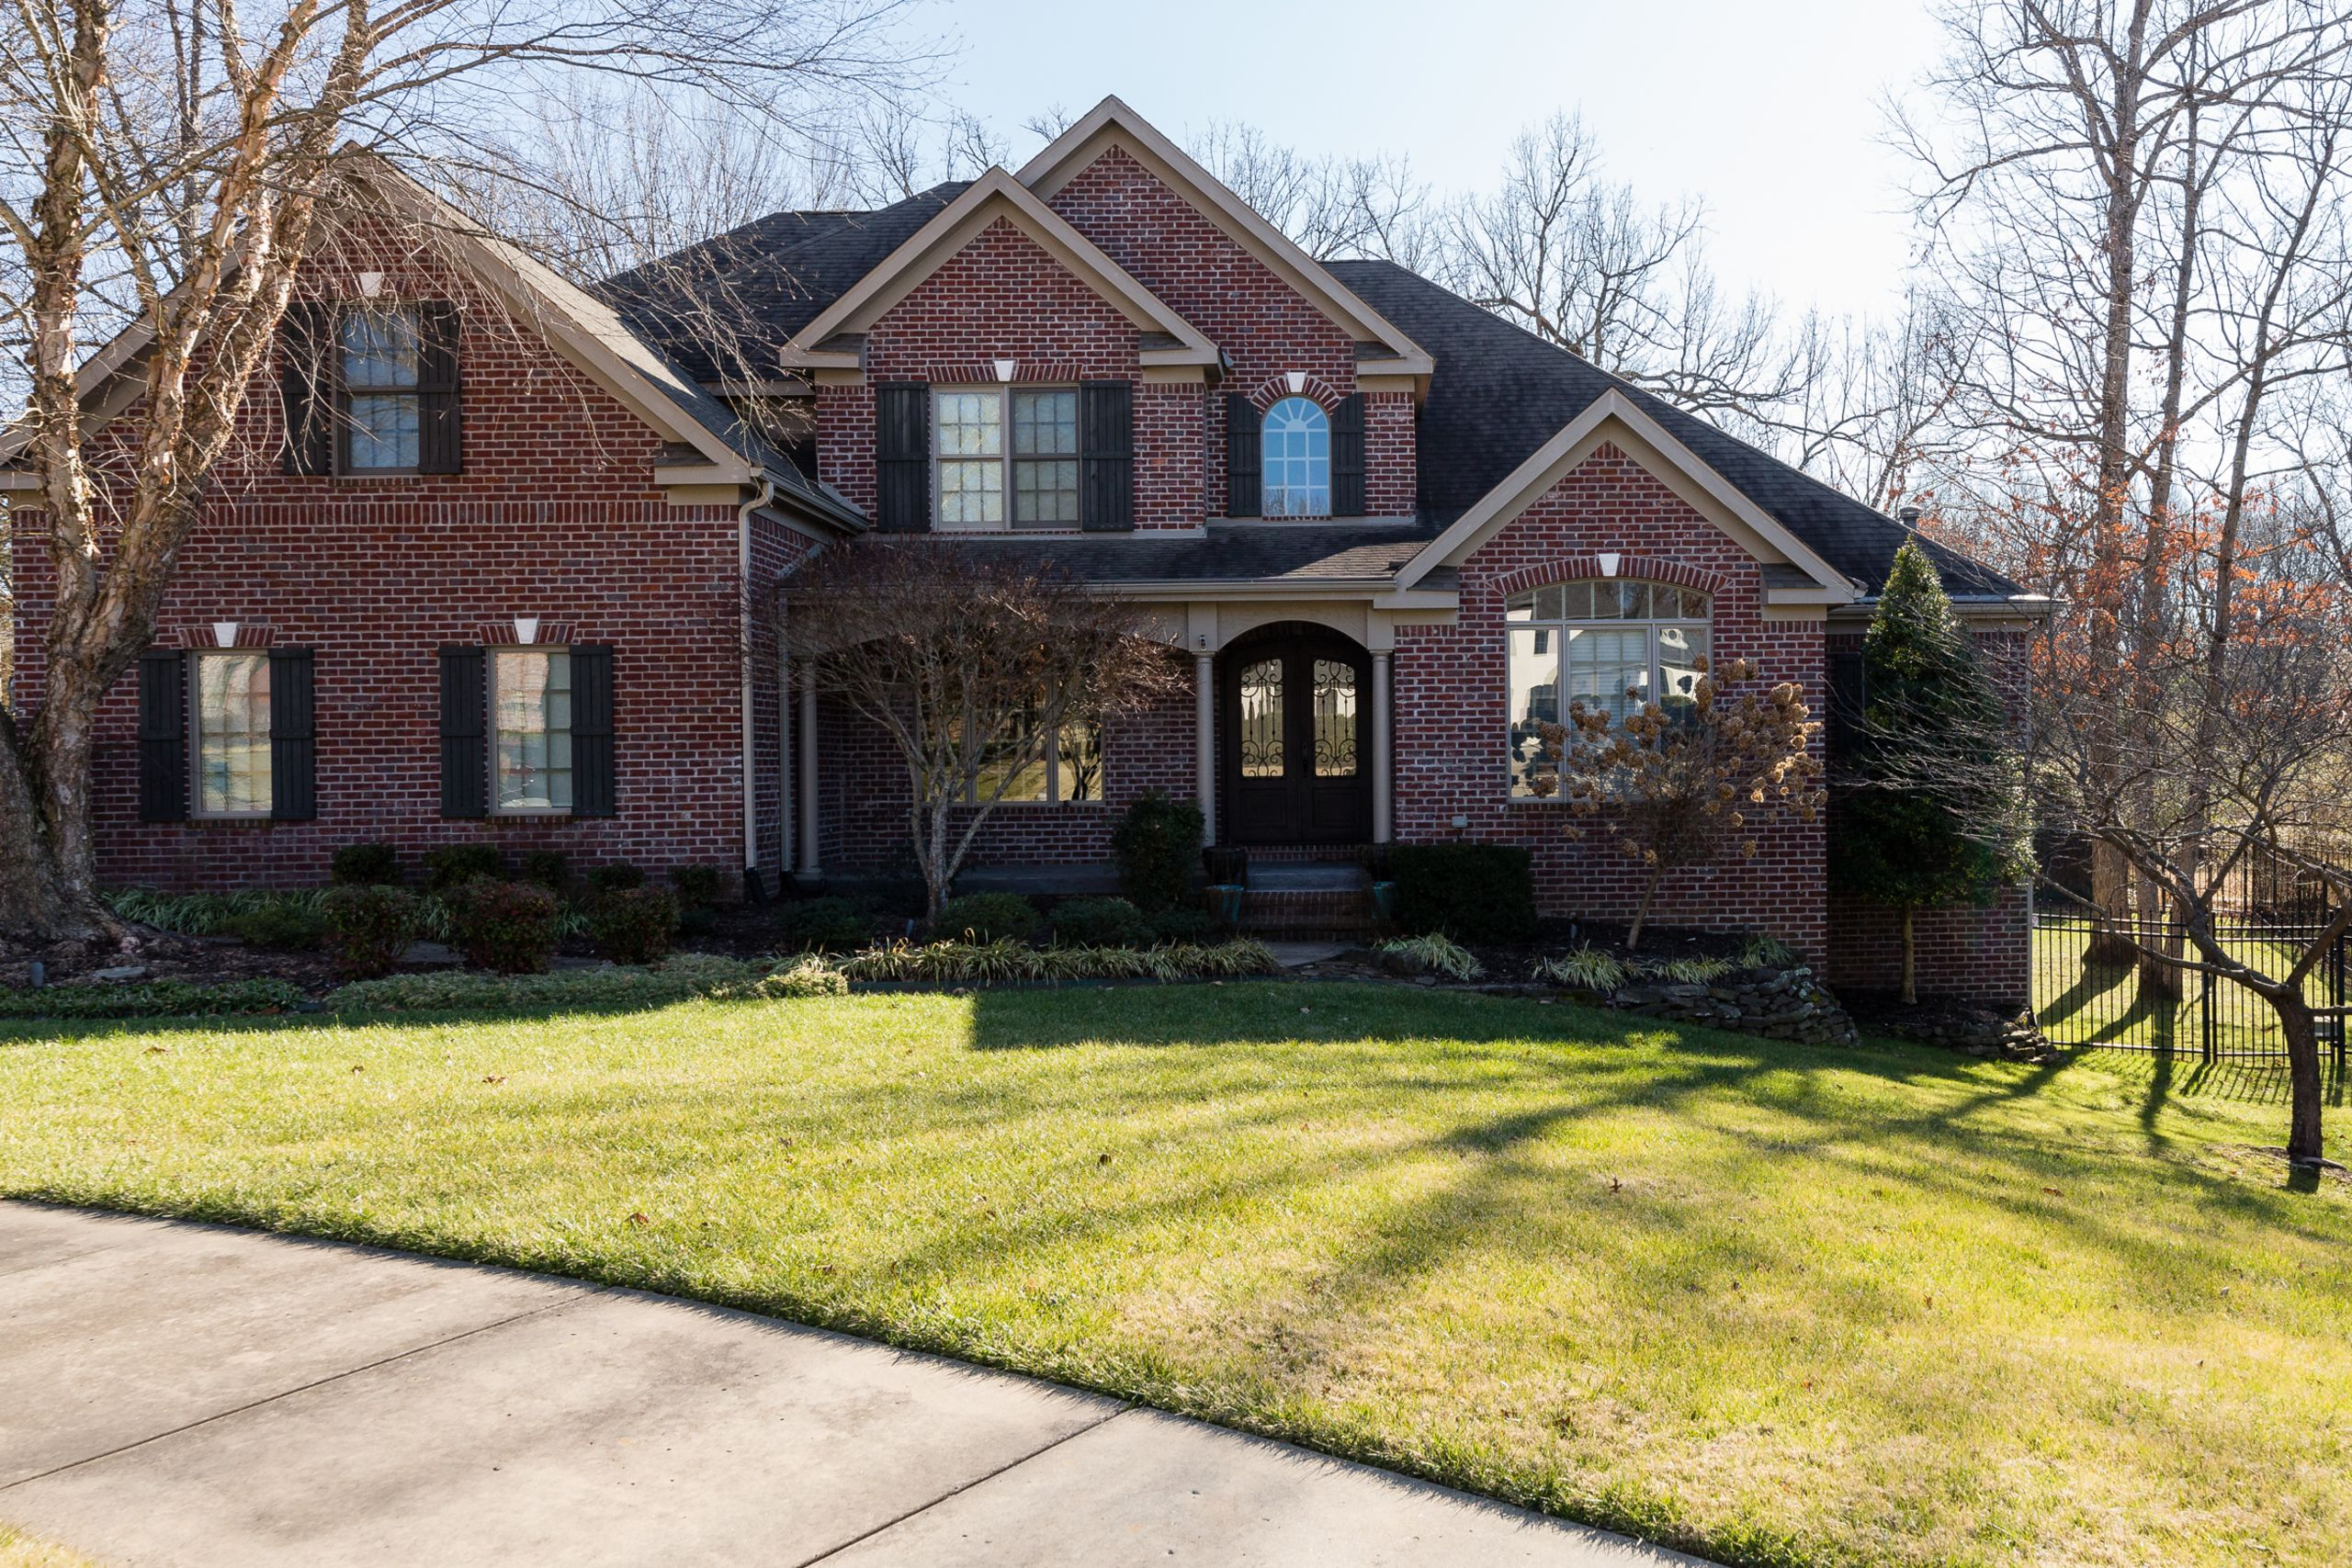 4464 Caddo Lane - $929,900